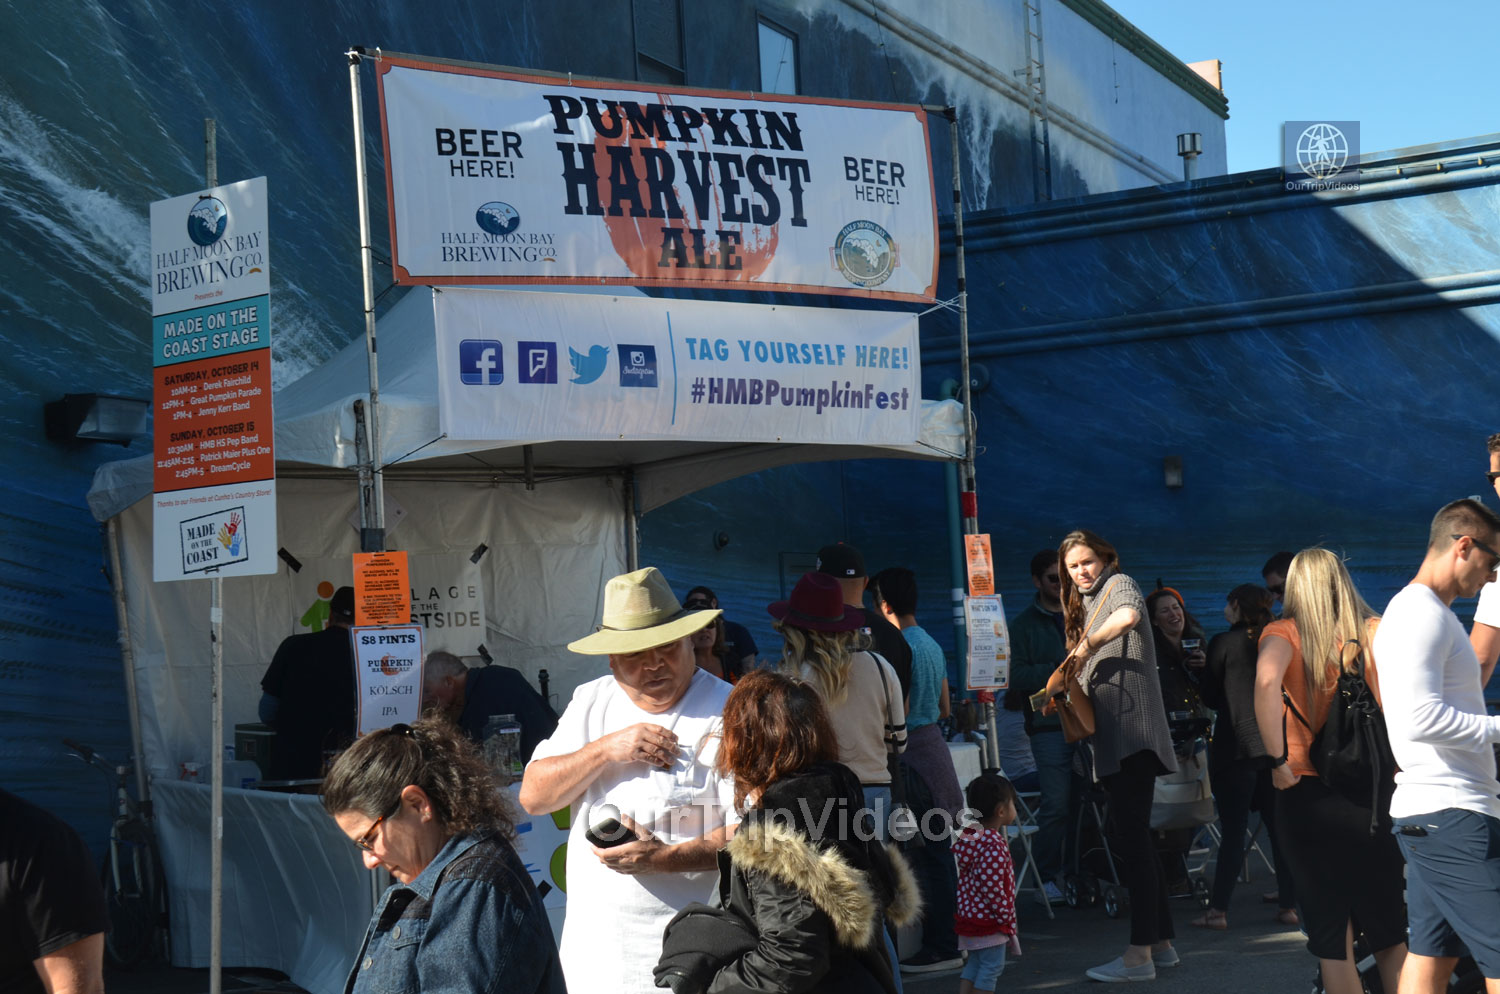 Art and Pumpkin Festival(Parade), Half Moon Bay, CA, USA - Picture 9 of 25